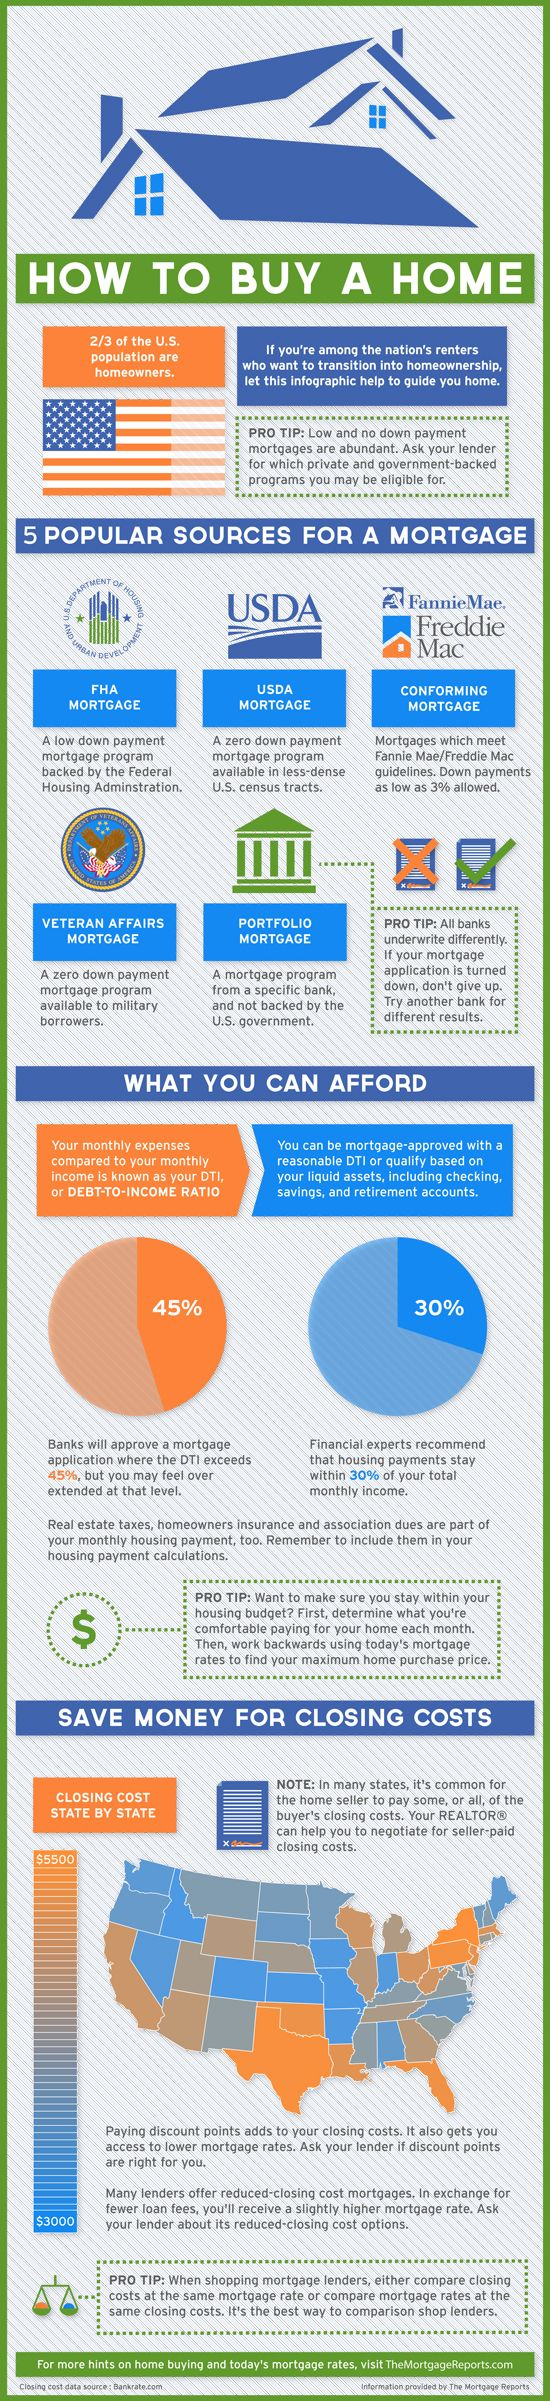 Mortgage Approval: Fha Mortgage Approval Guidelines